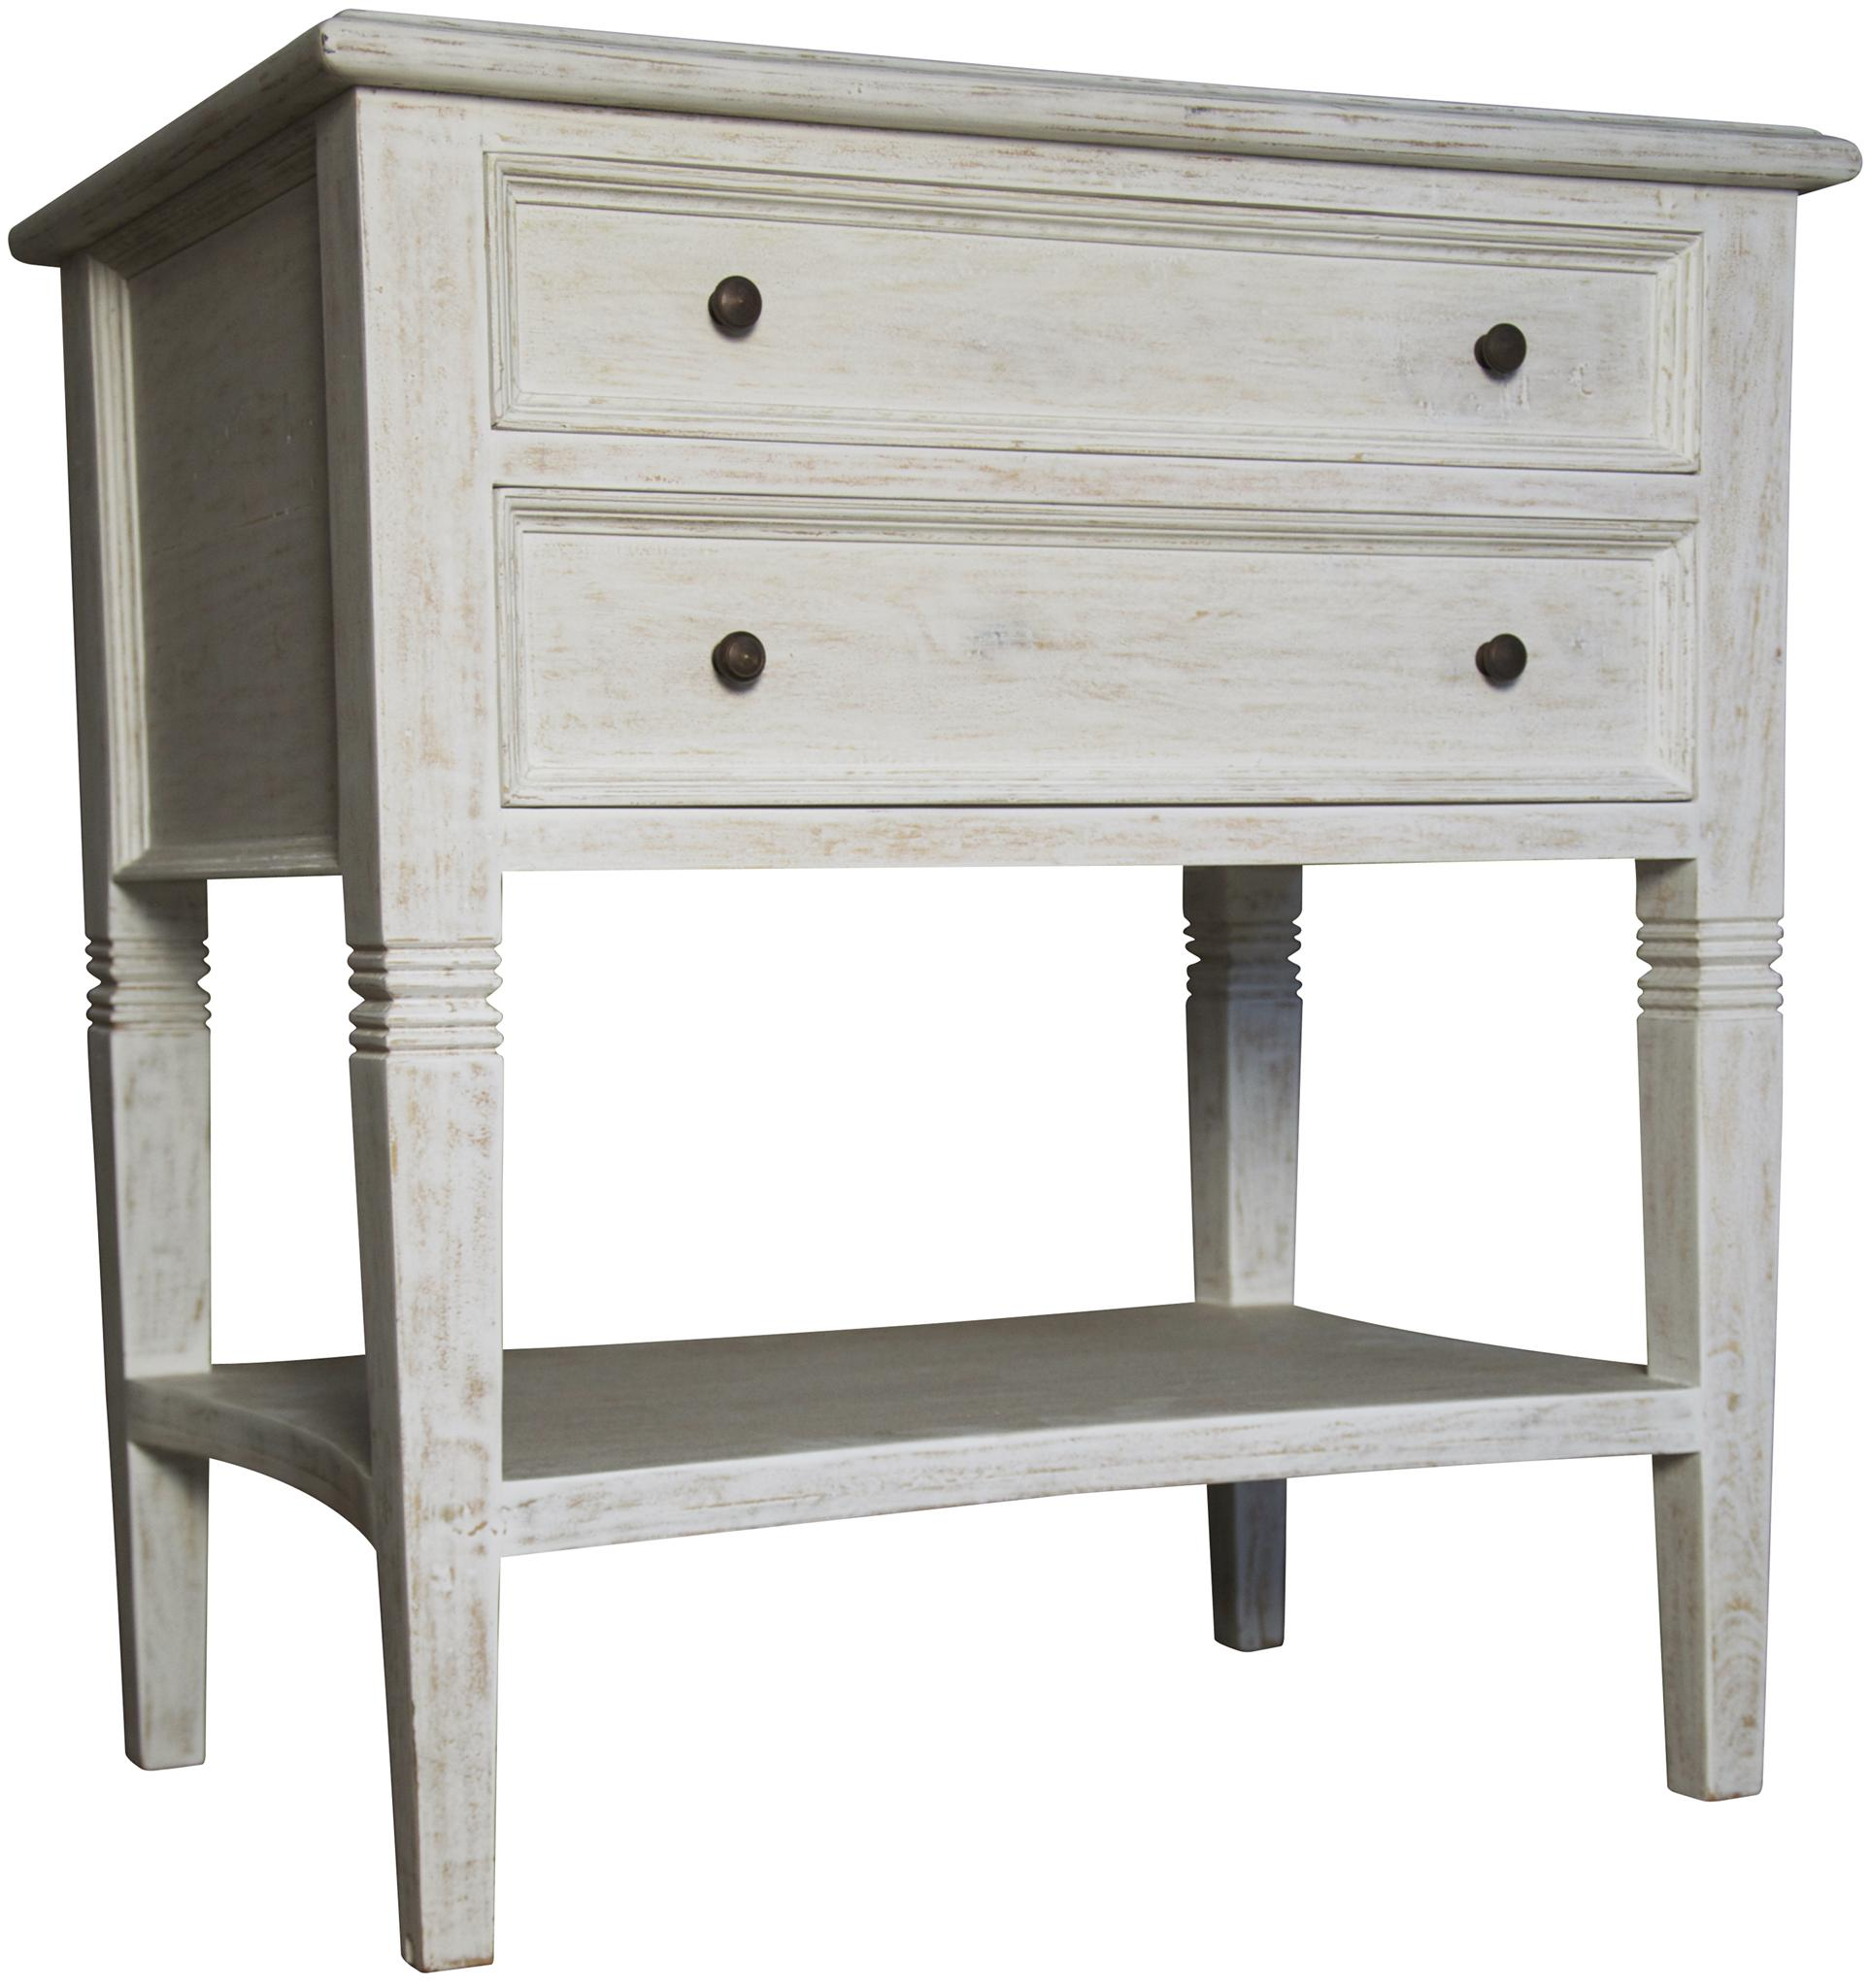 chests whitewashed jaycob bayside mirimyn accent white rustic windham antique corner target small one tall cabinets storage and cabinet door whitewash table full size mid century